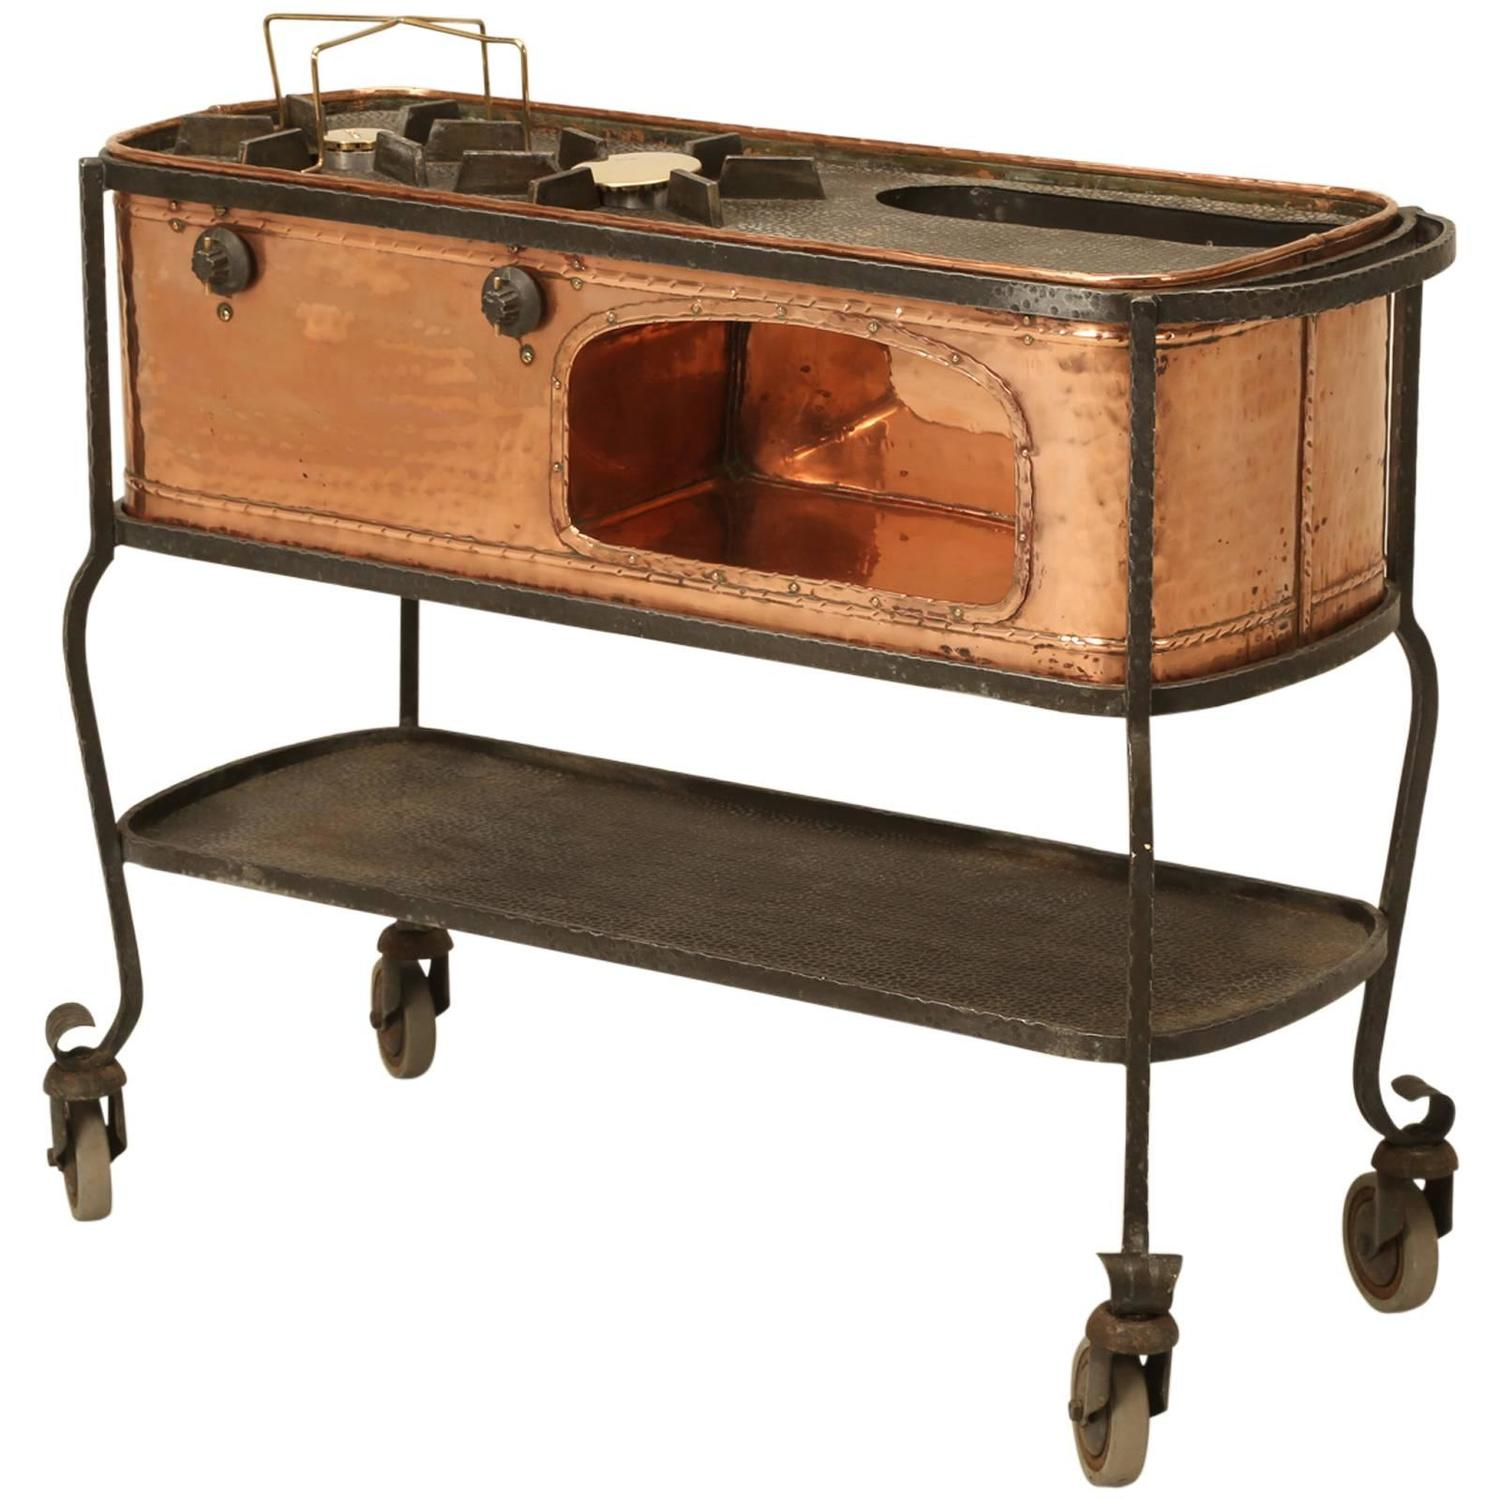 Parisian dessert cooker kitchen island or vanity for sale at 1stdibs - Industrial kitchen island for sale ...